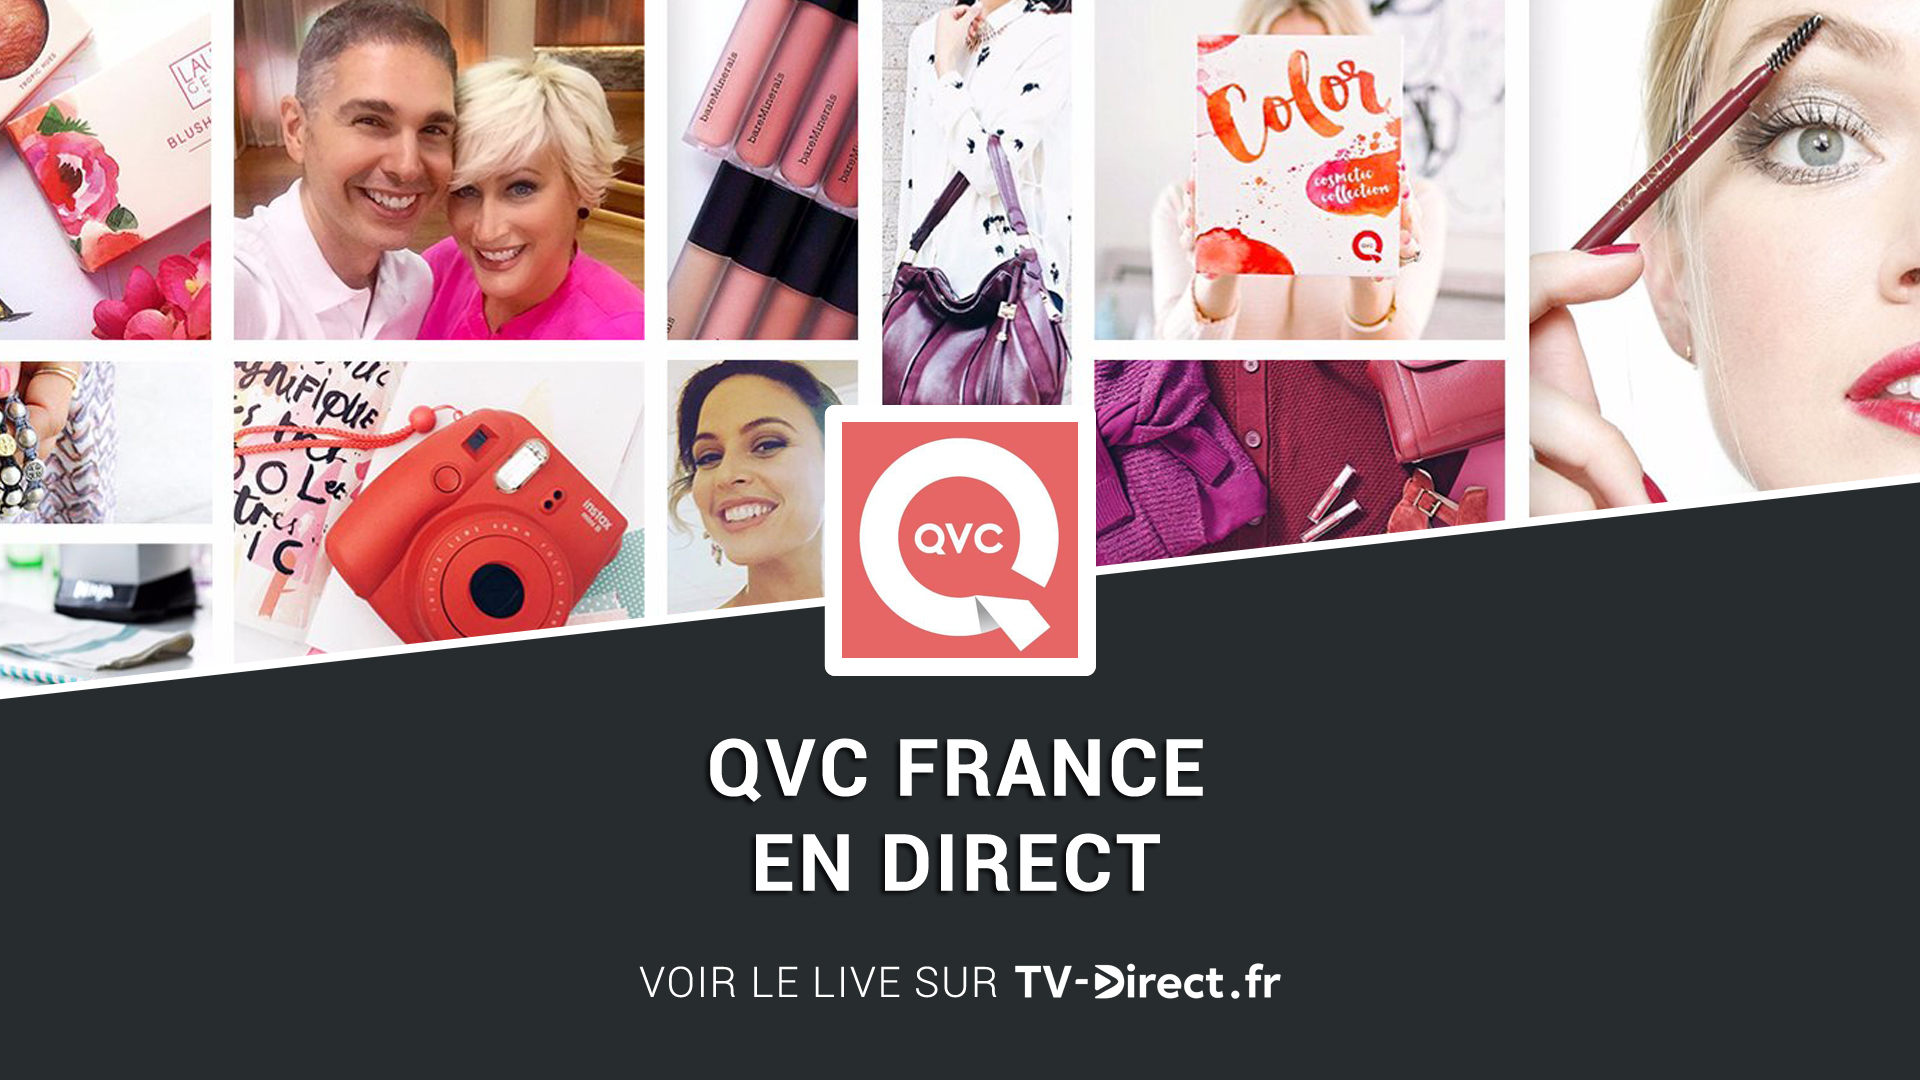 QVC France Direct - Regarder QVC France live sur internet